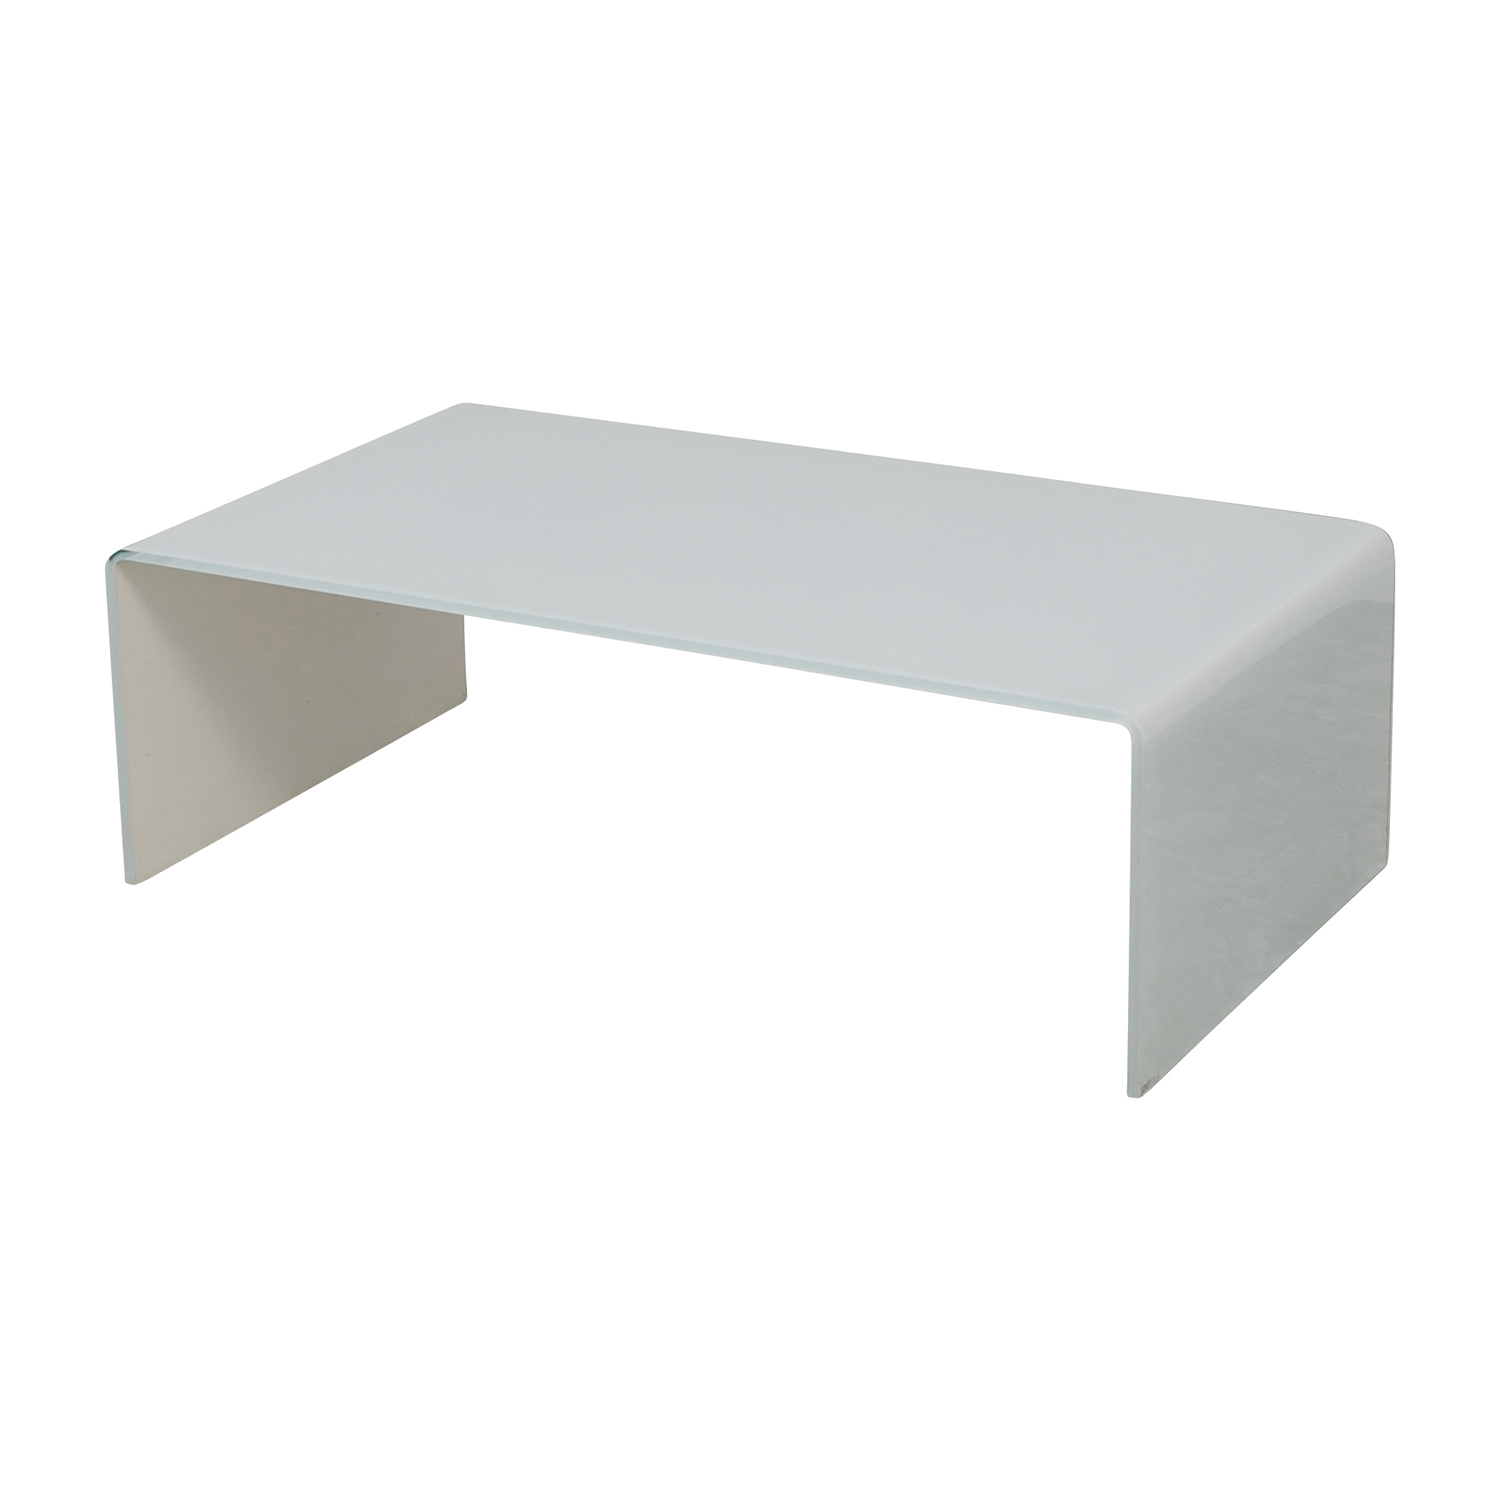 Miniforms Miniforms High-End Curvo White Glass Table nyc